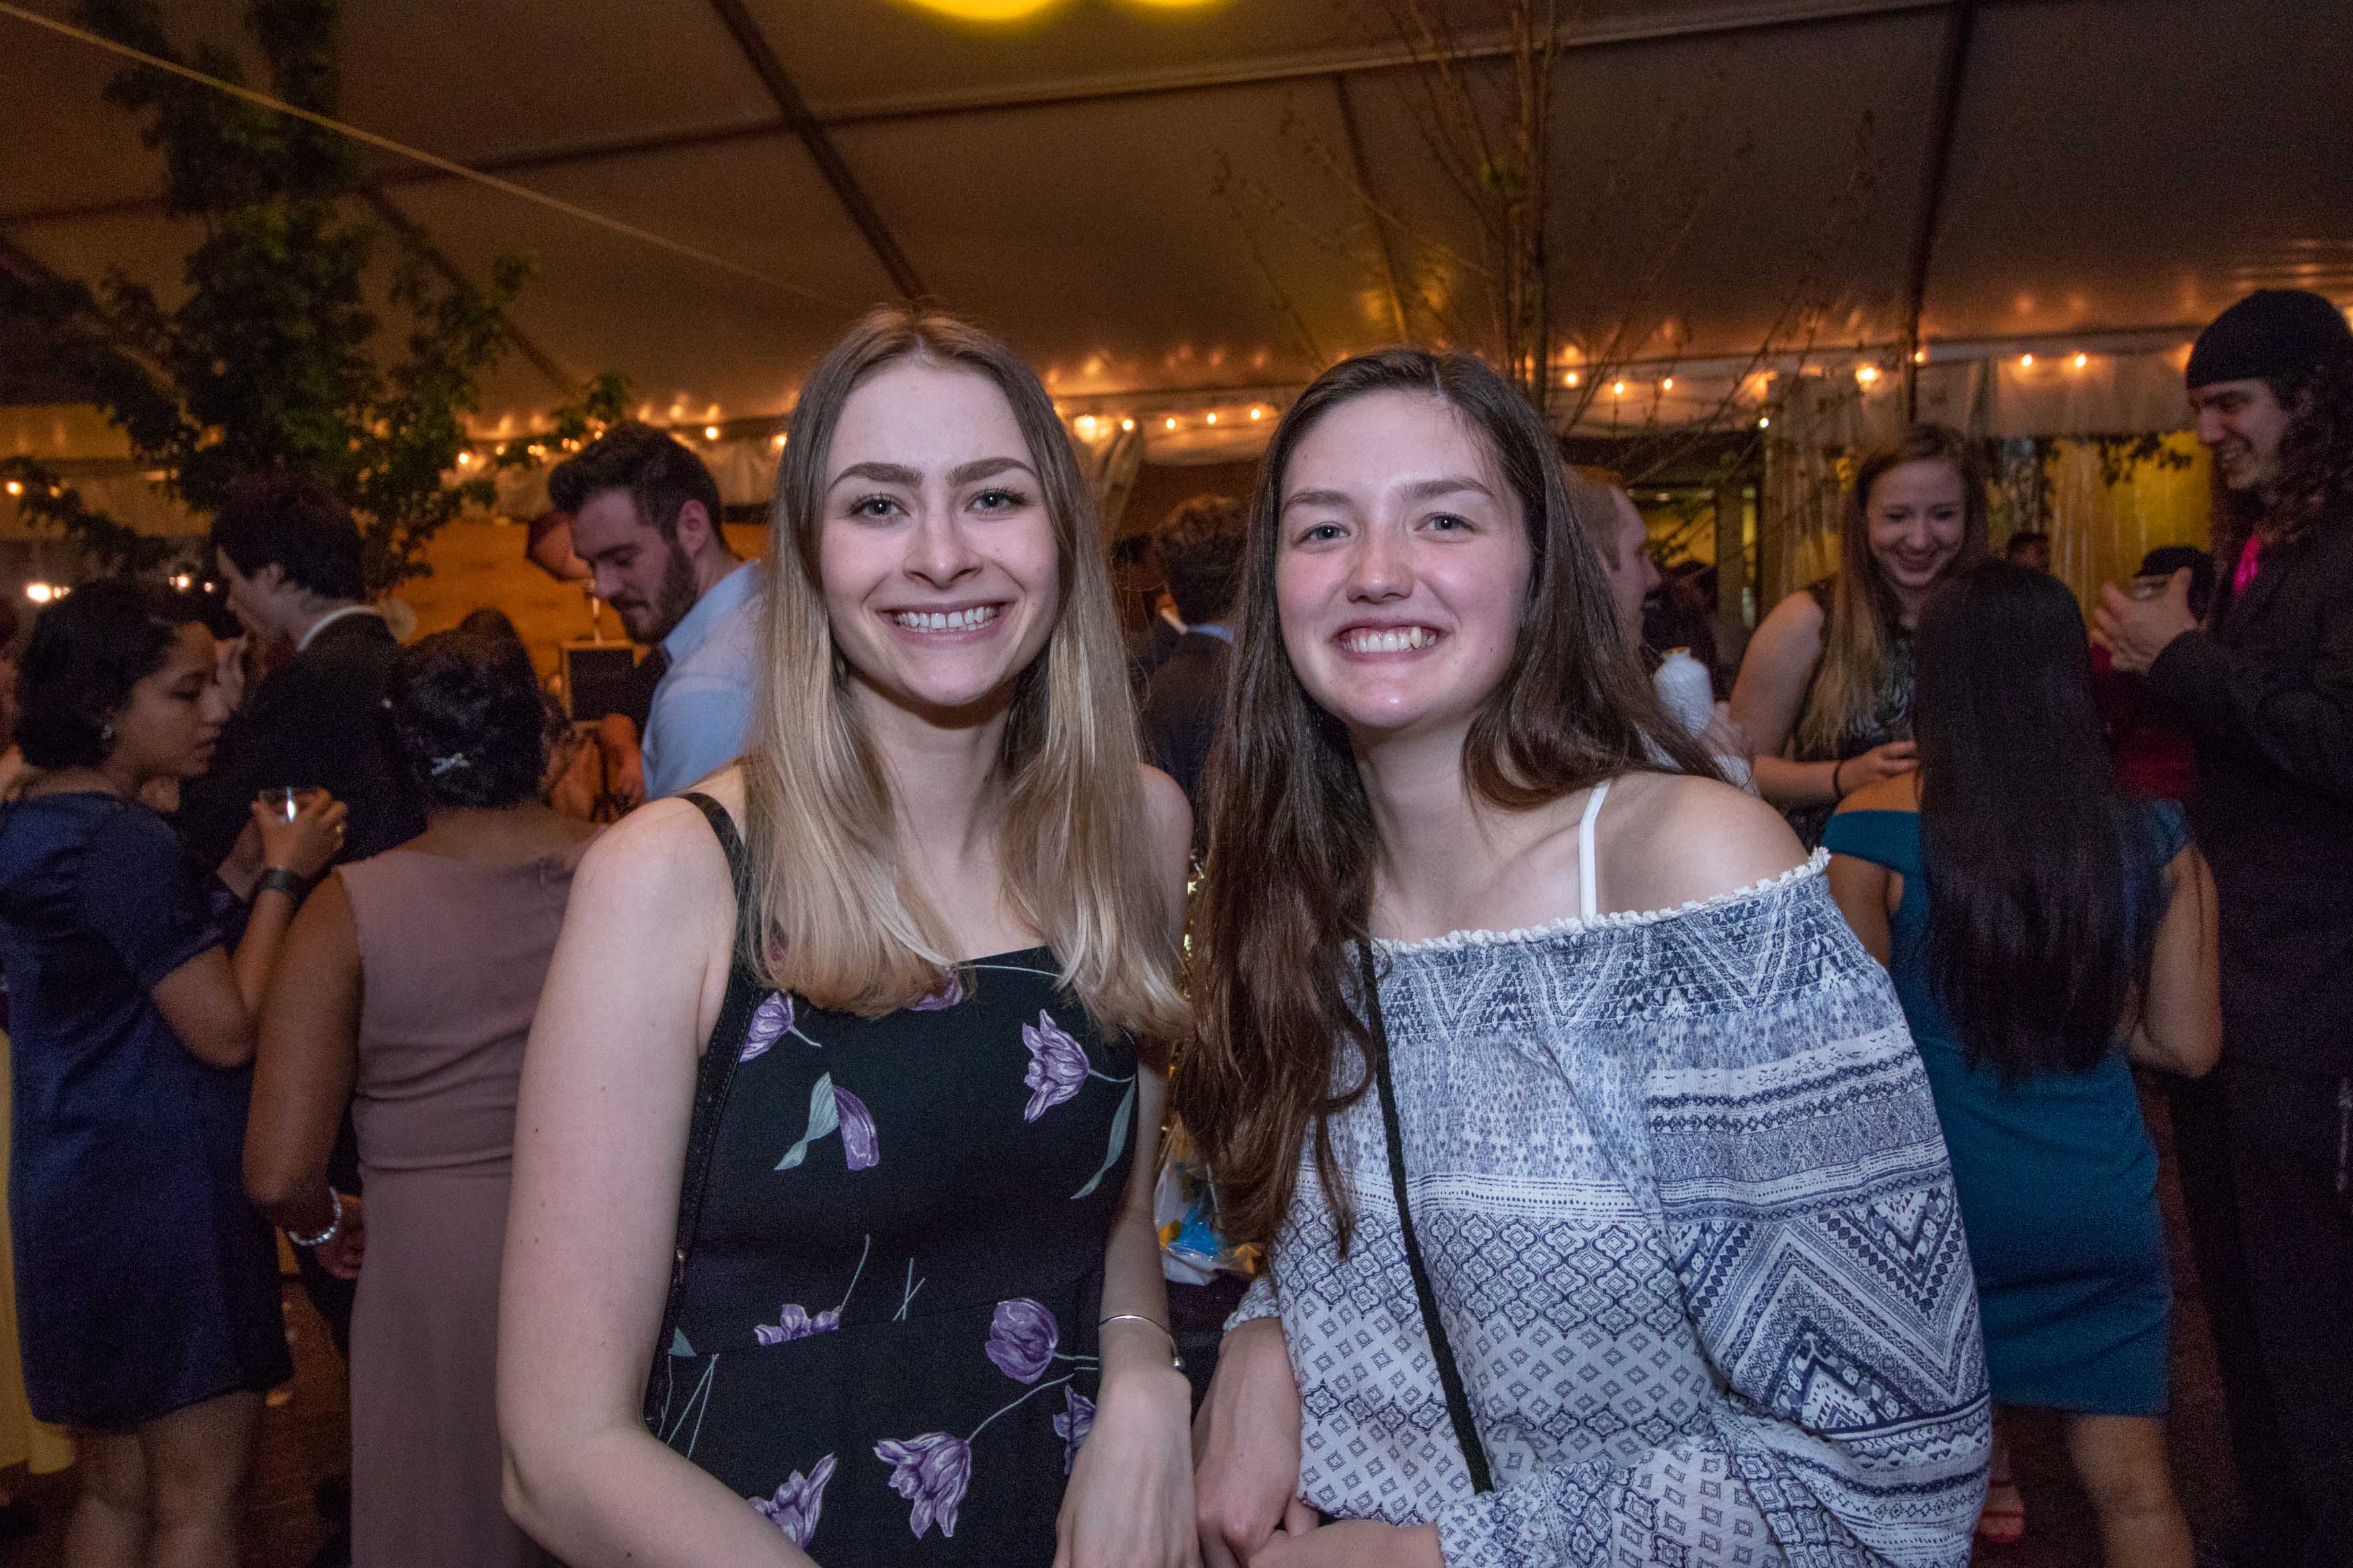 Two girls pose together at Grad dance